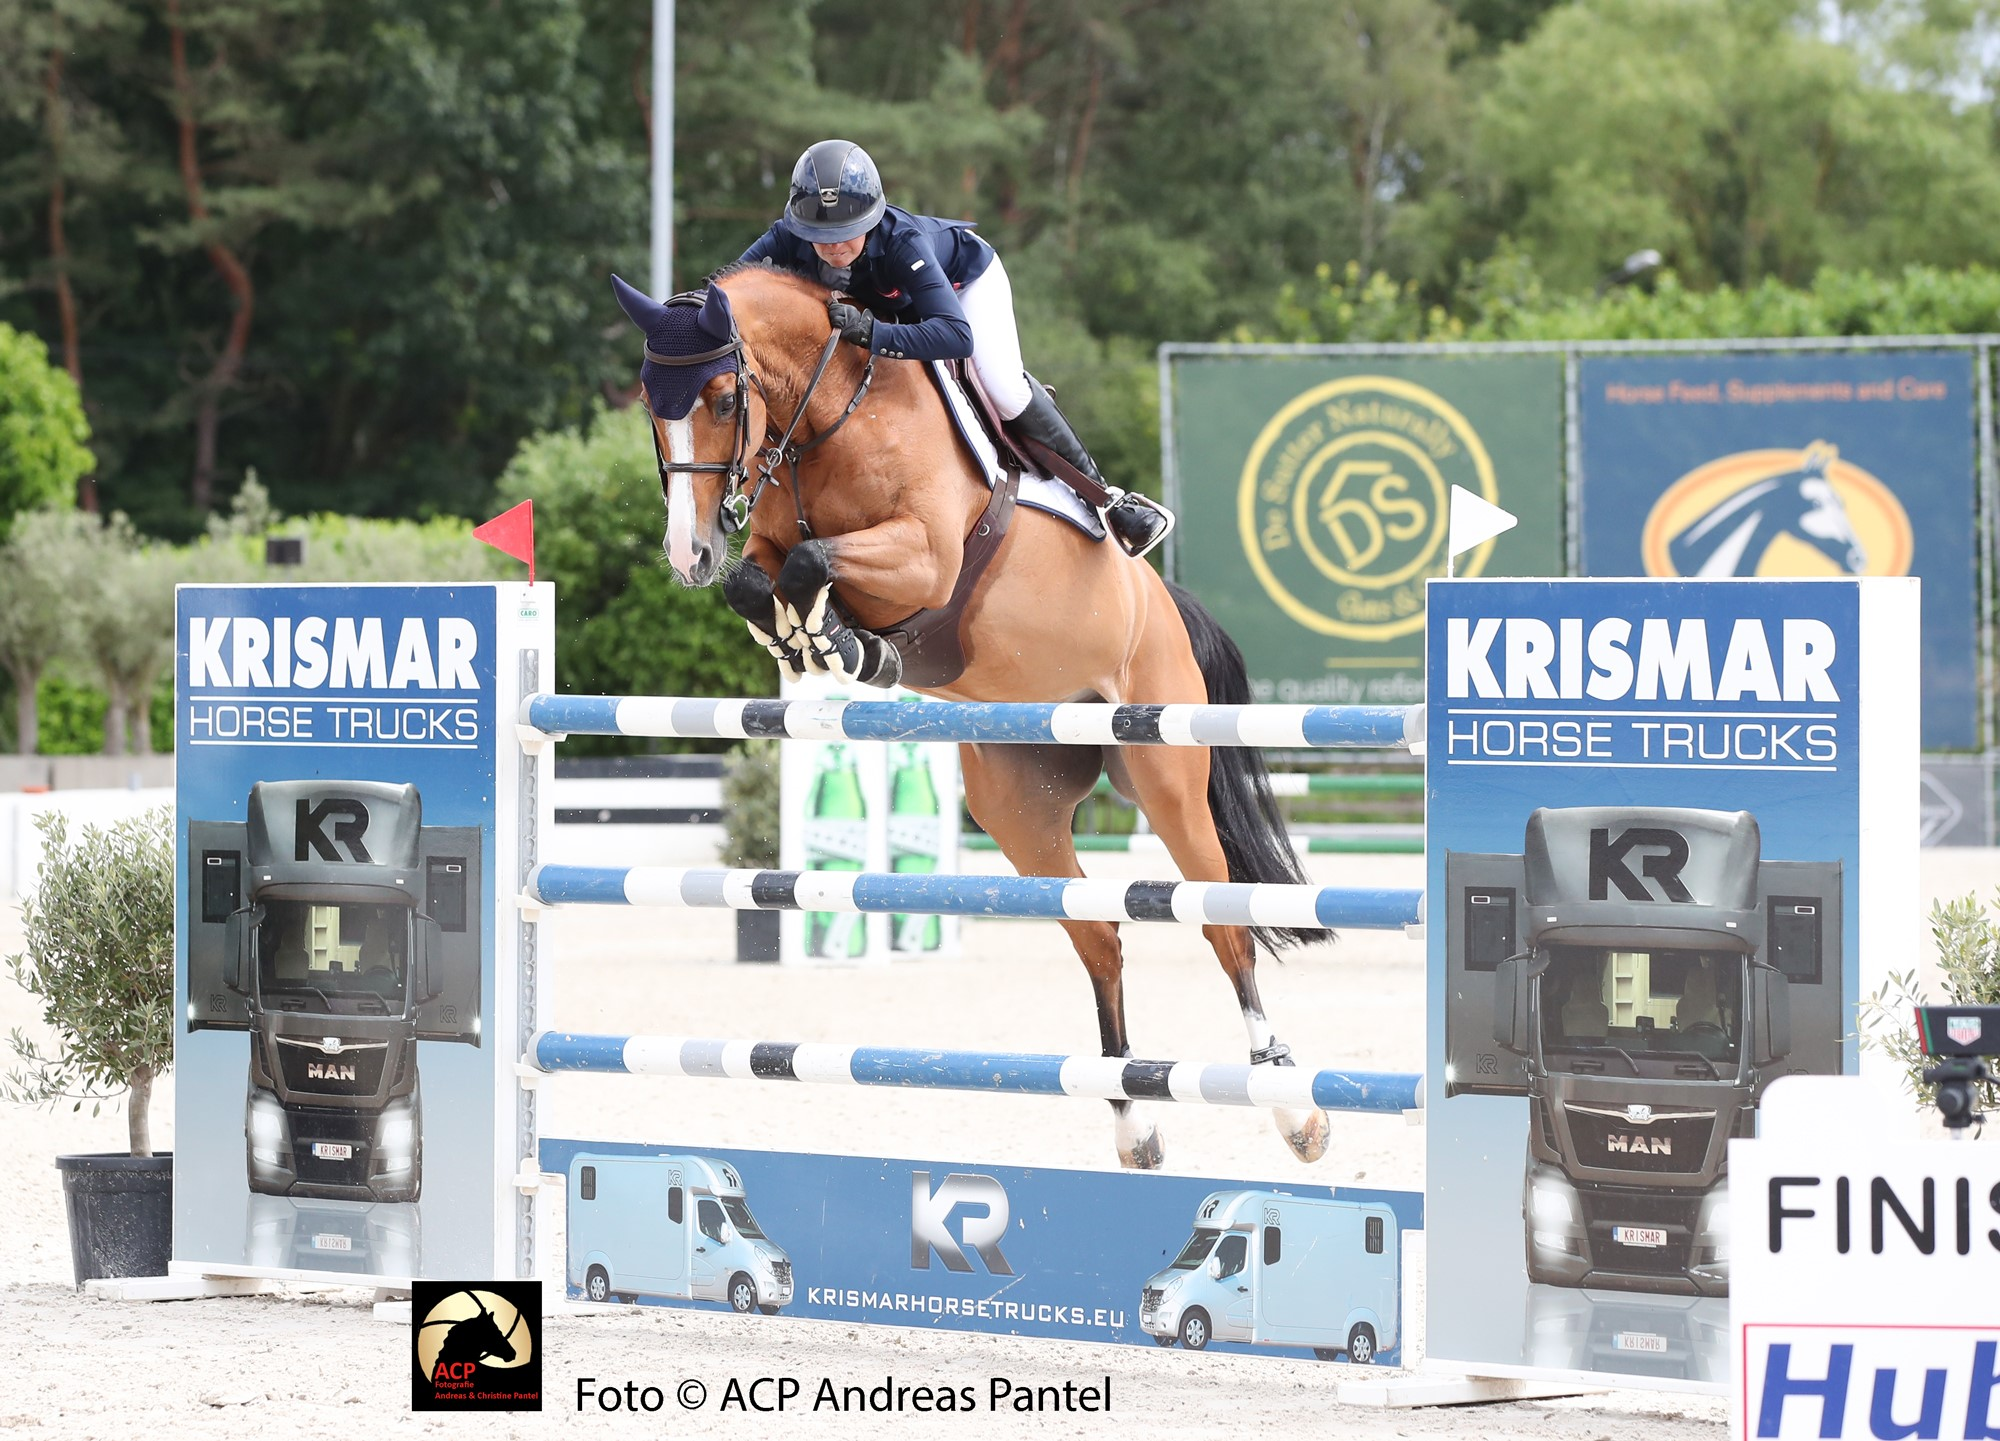 Who were the winners of the GP's of Treffen, St Tropez, Bolesworth, Bonheiden, Kronenberg and Deaville today?